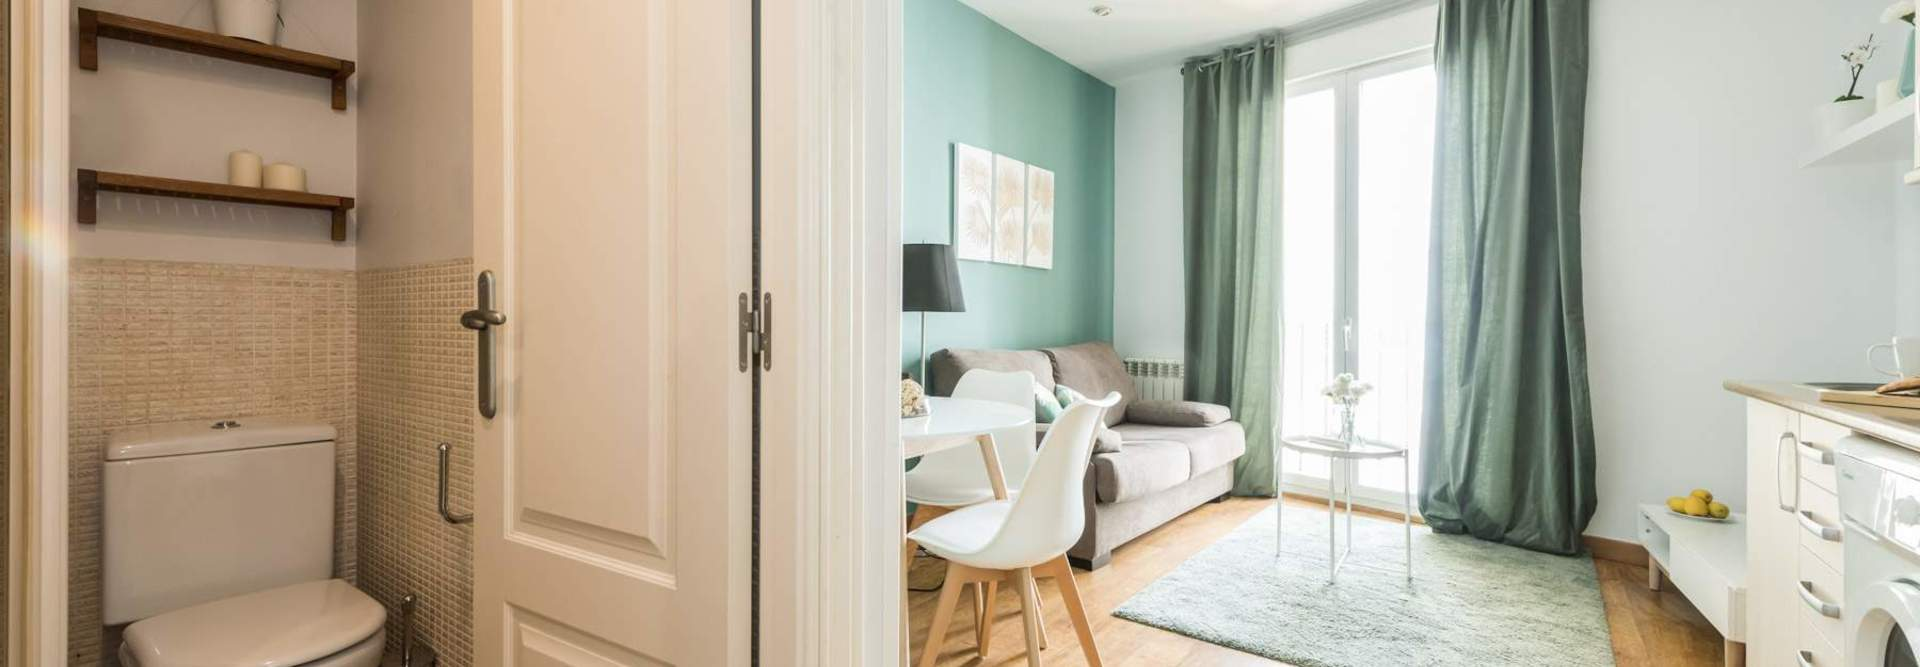 Home alquiler apartamento madrid centro mad4rent  10